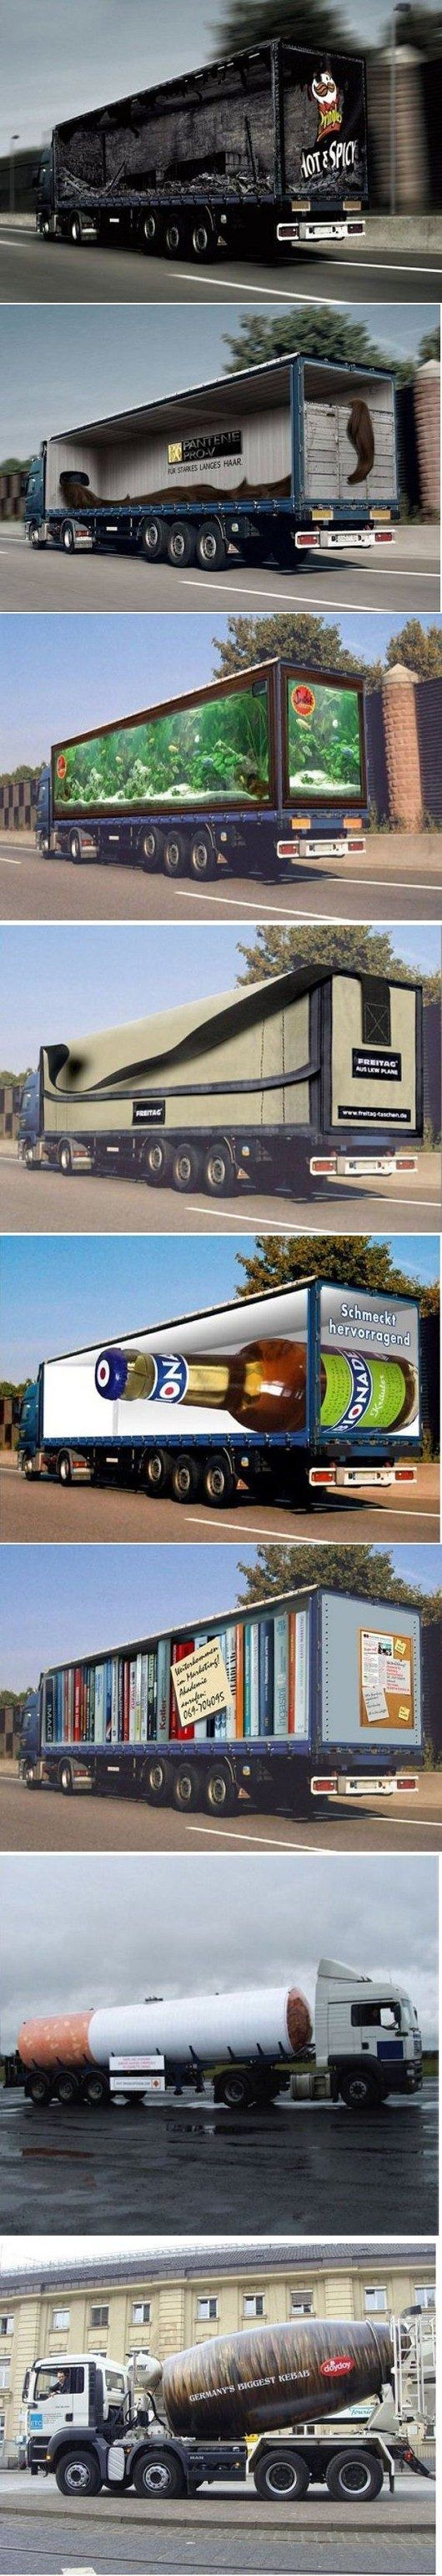 cool 15 Awesome Truck Advertisements (15 Pics) | Daily Dawdle